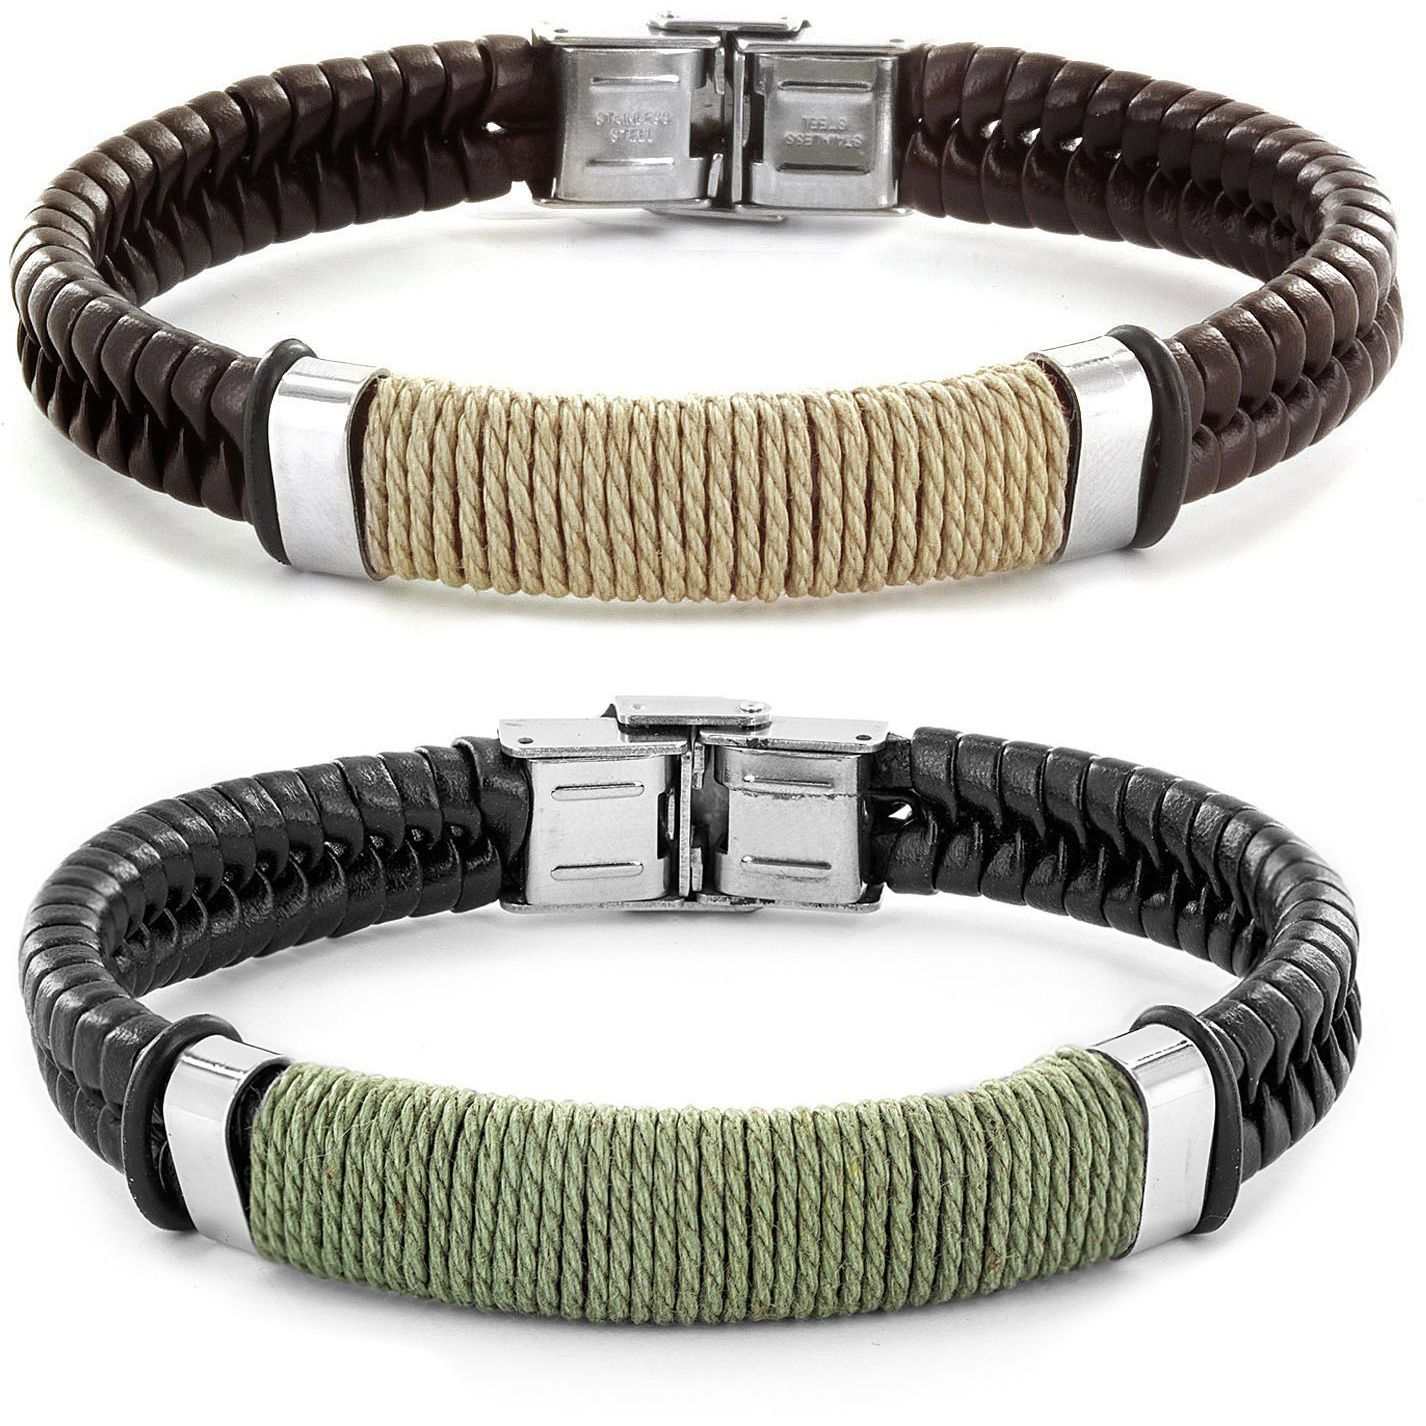 Stylish and uniquely rugged, this brown or black genuine leather bracelet features a braided band and stainless steel clasp, along with a tightly wound twine center for a tough, weathered look.